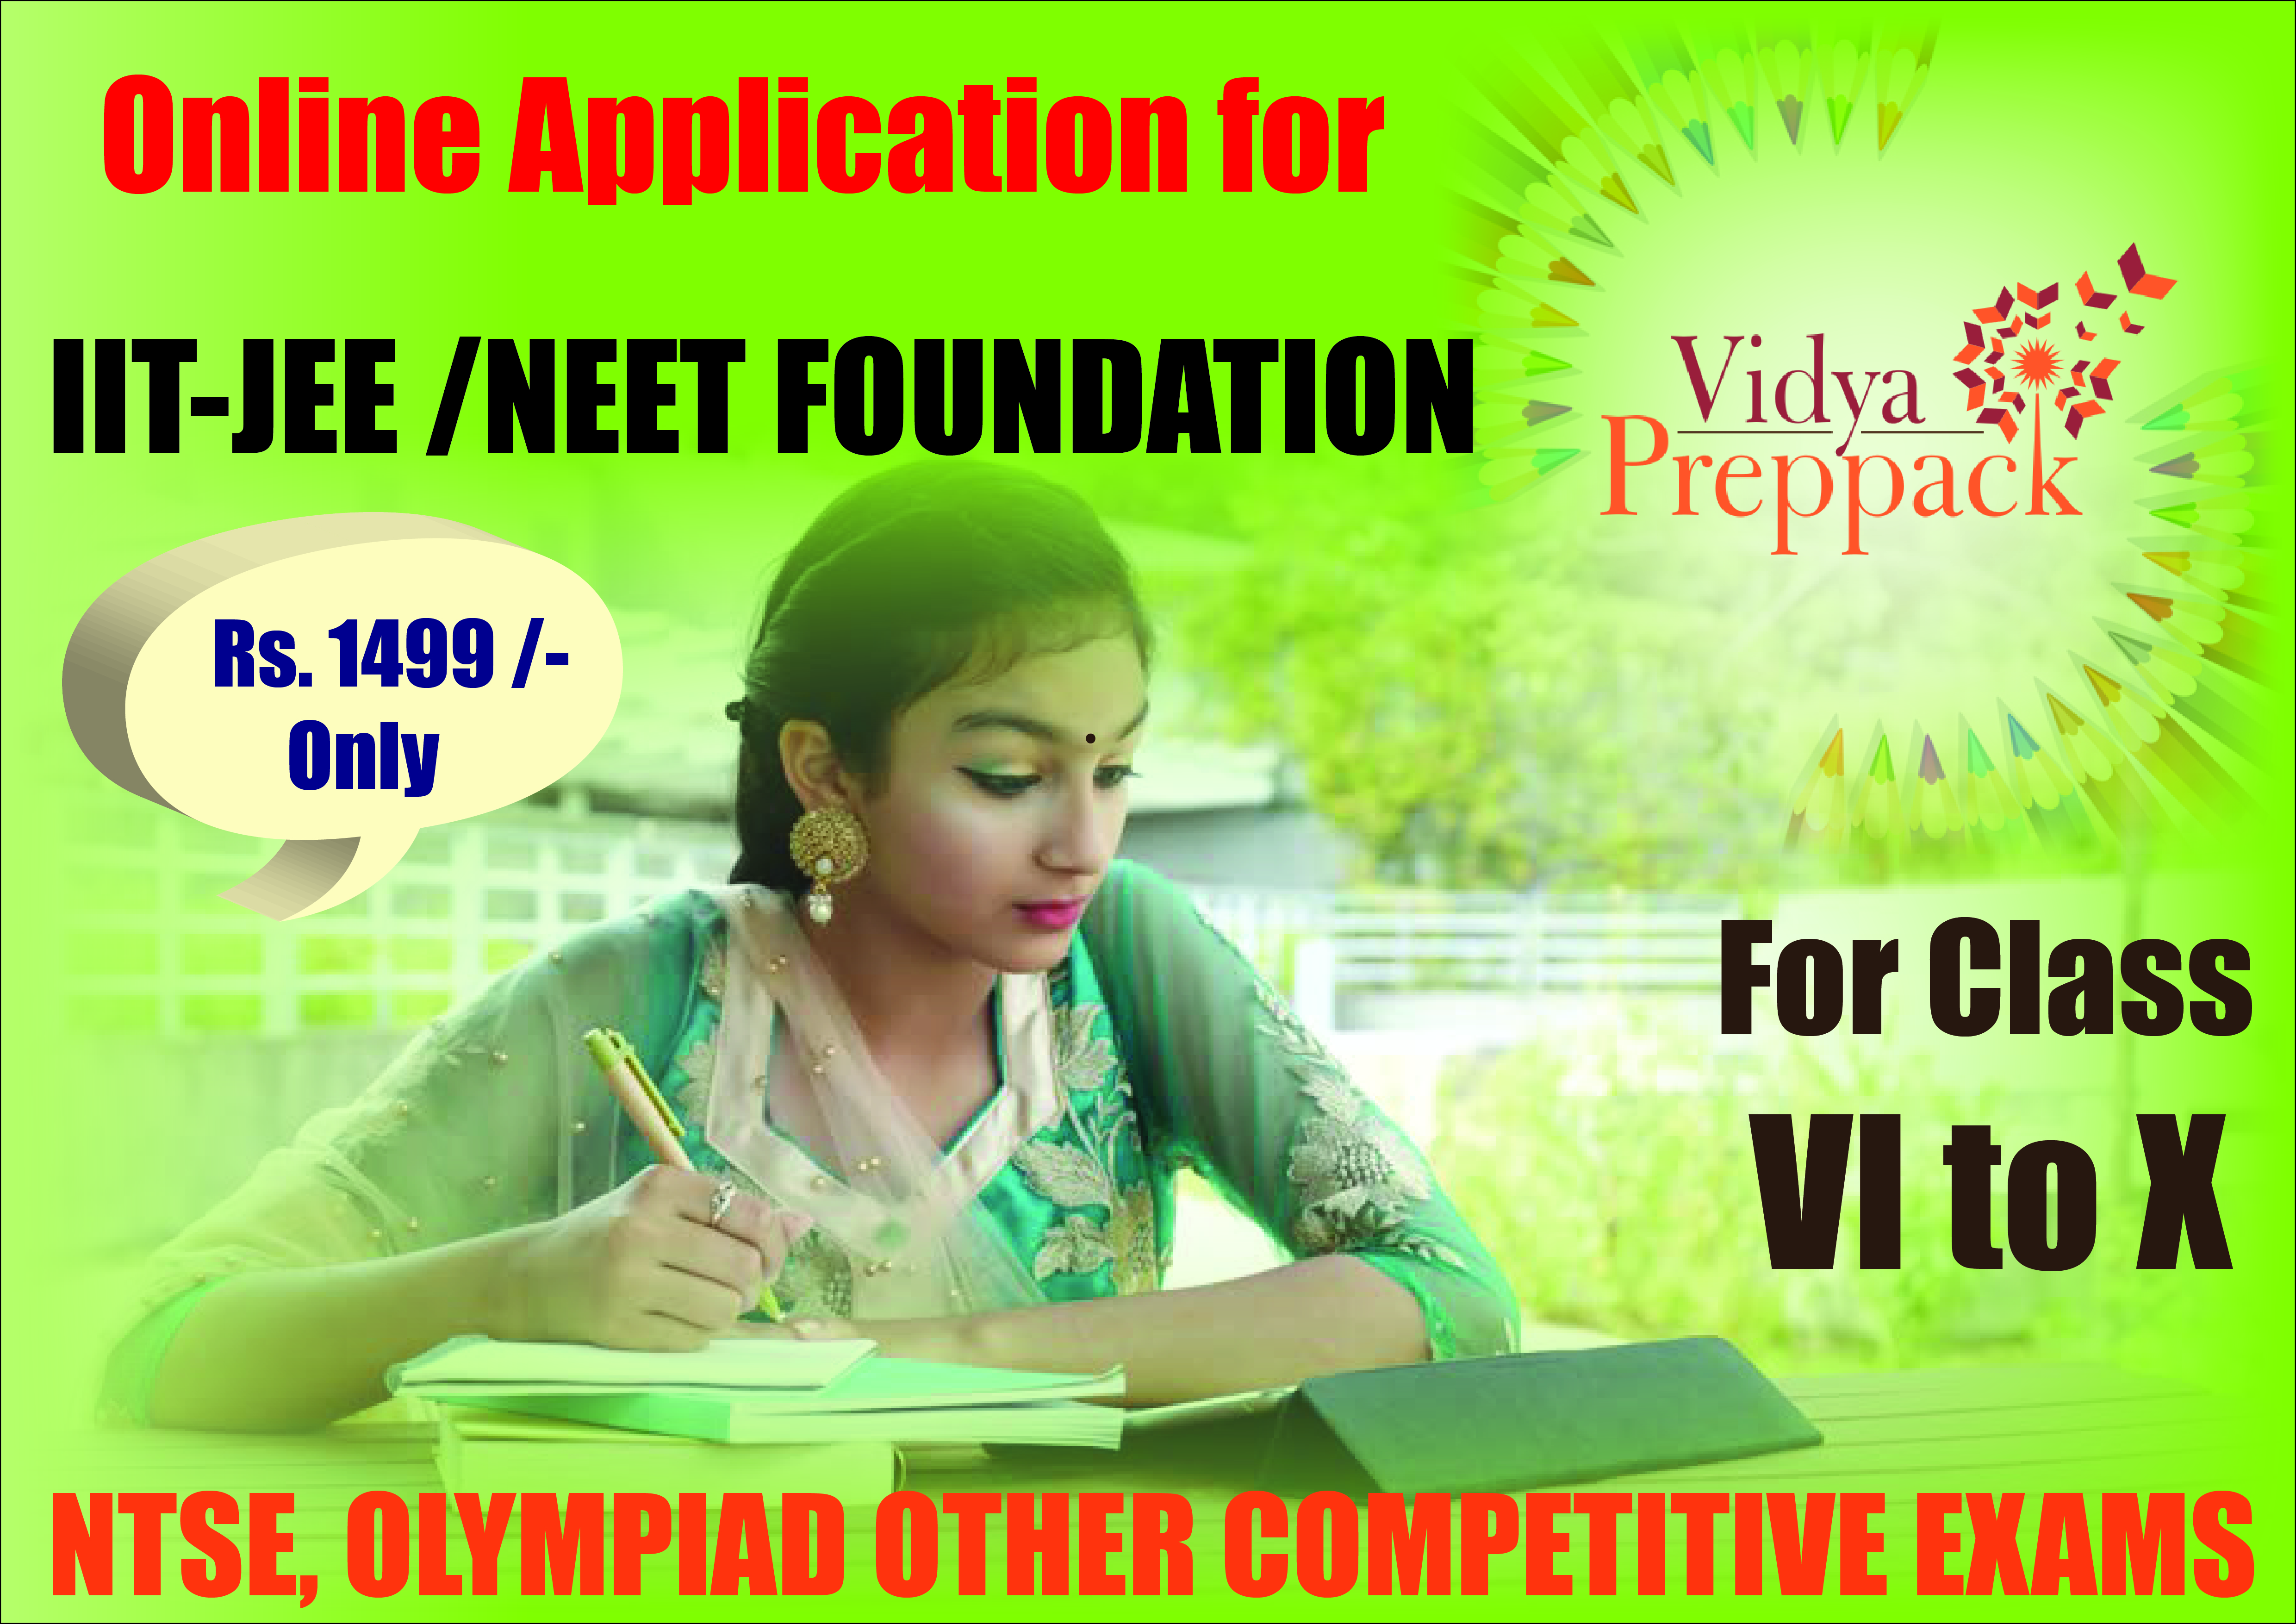 VidyaPreppack For Strong IIT/NEET Foundation For Class 6th to 10th